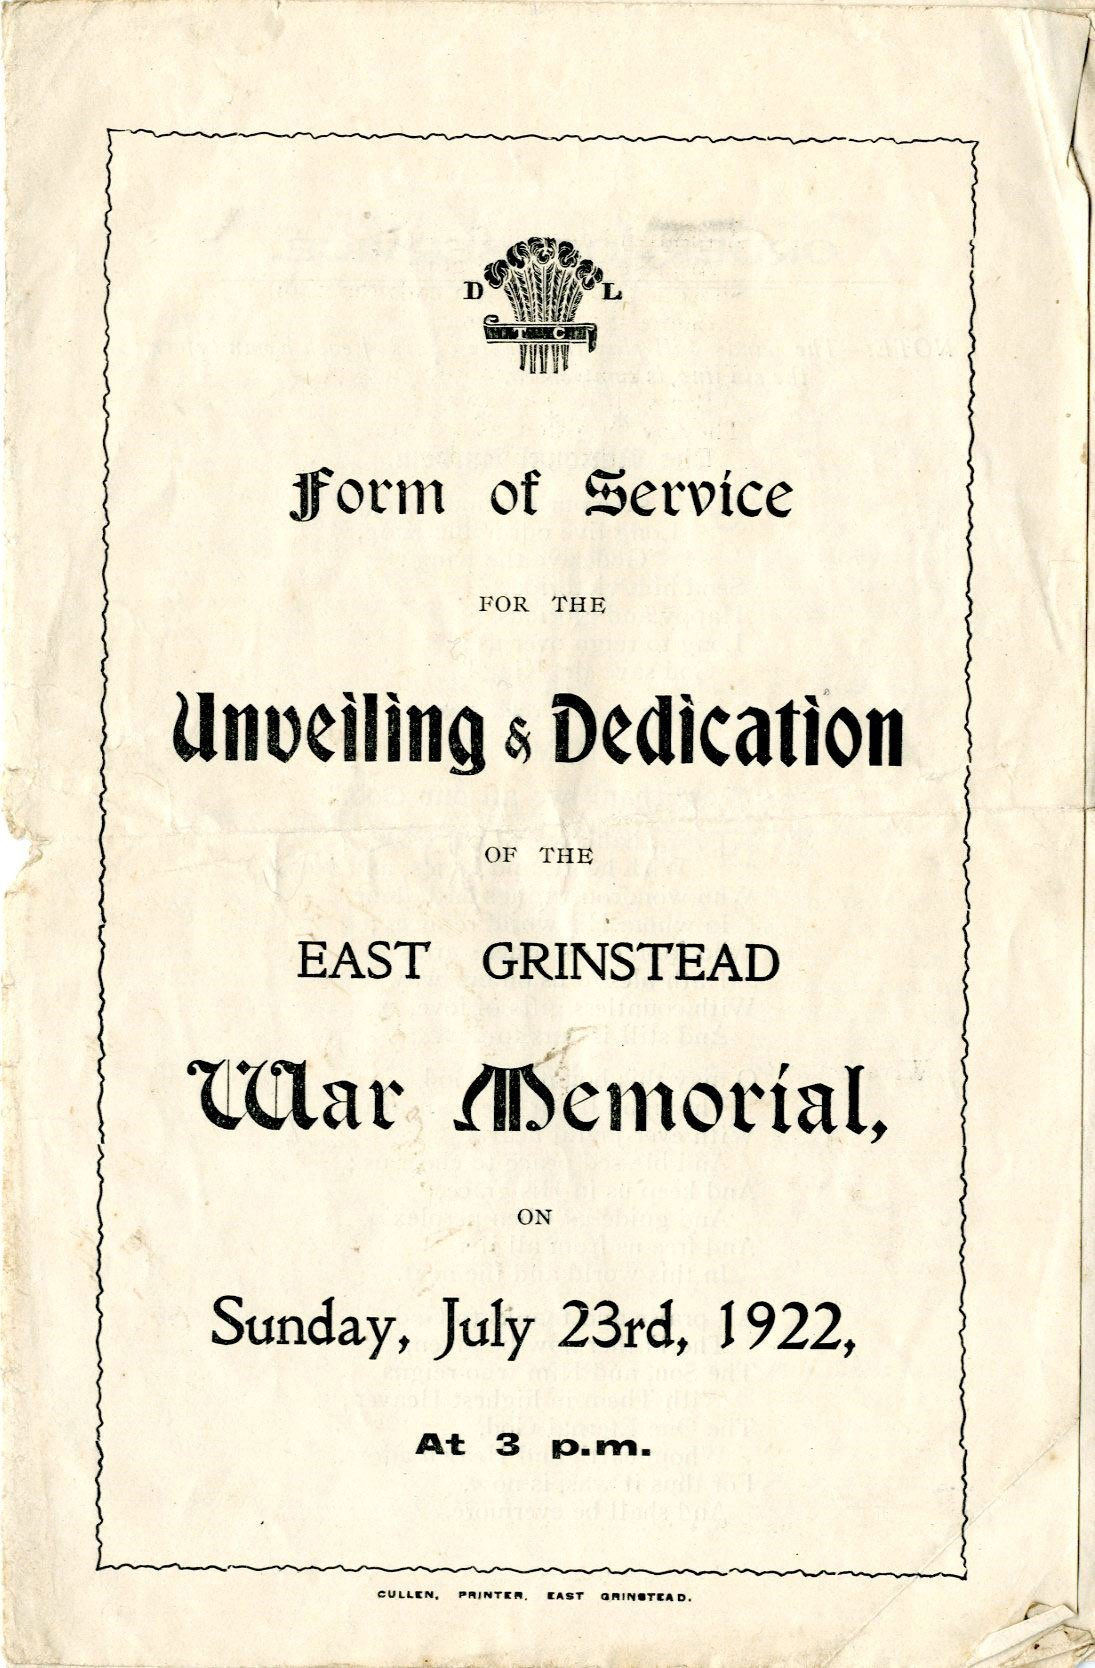 East Grinstead Museum – Form of Service for the Unveiling & Dedication of the East Grinstead War Memorial